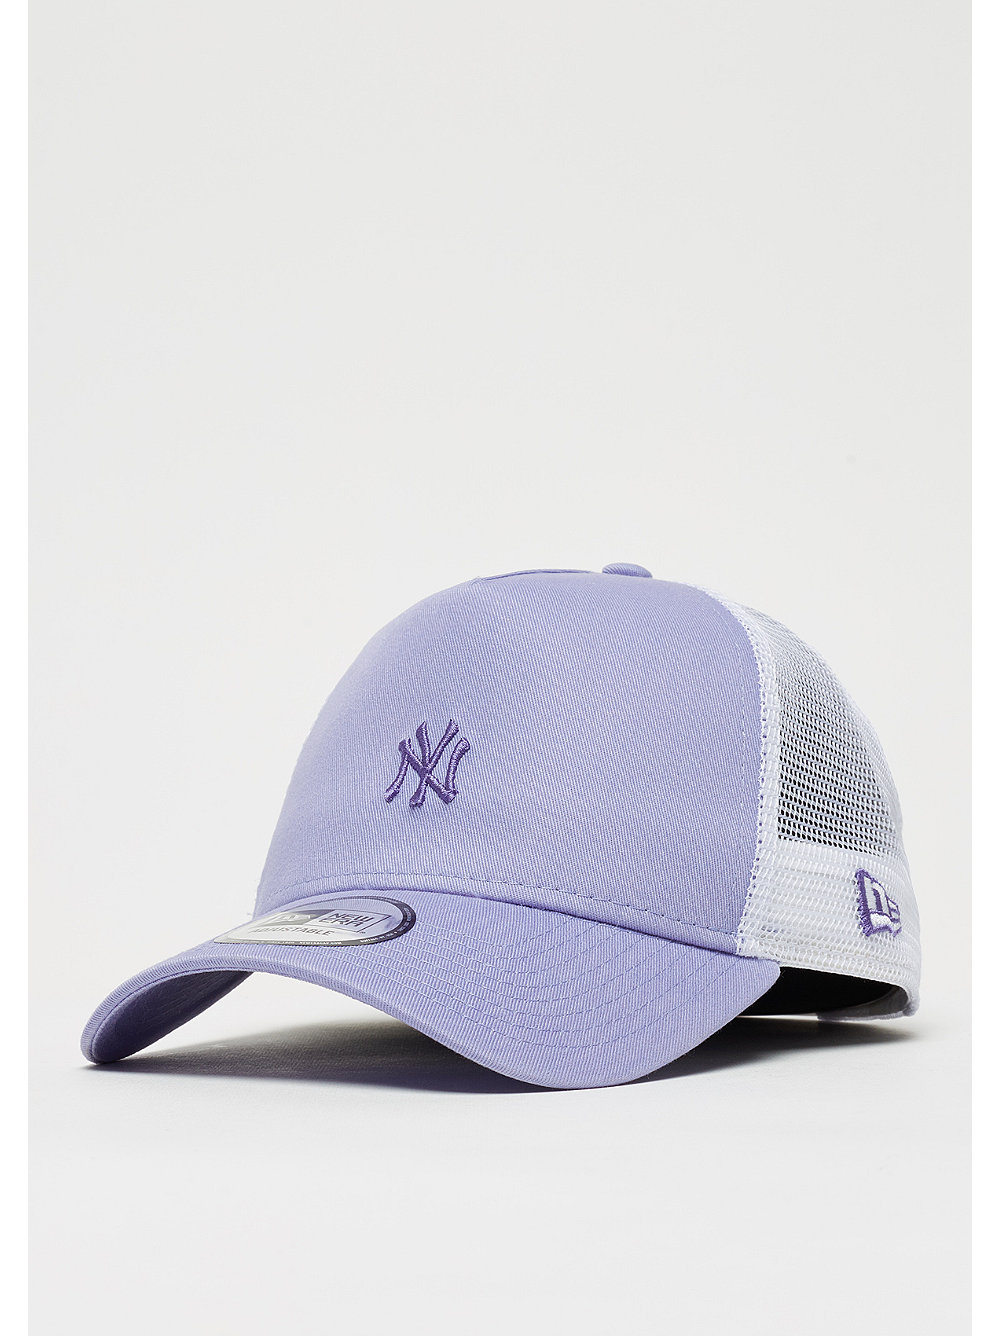 New Era Pastel Trucker MLB New York Yankees purple